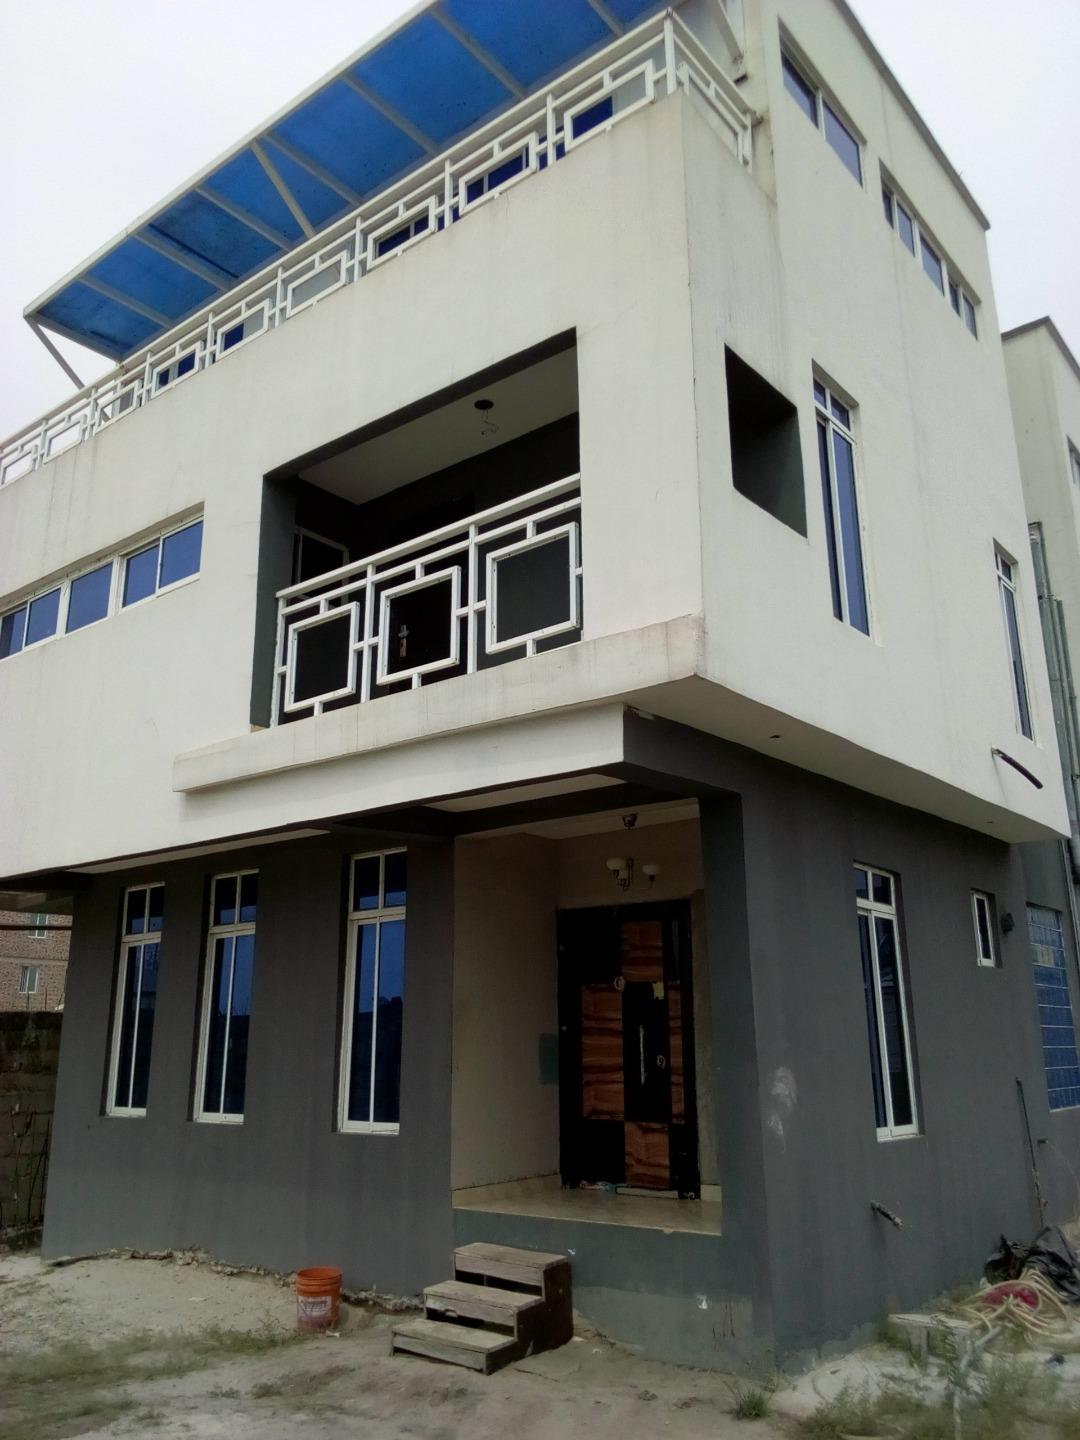 5bedroom duplex for sale in Lekki.